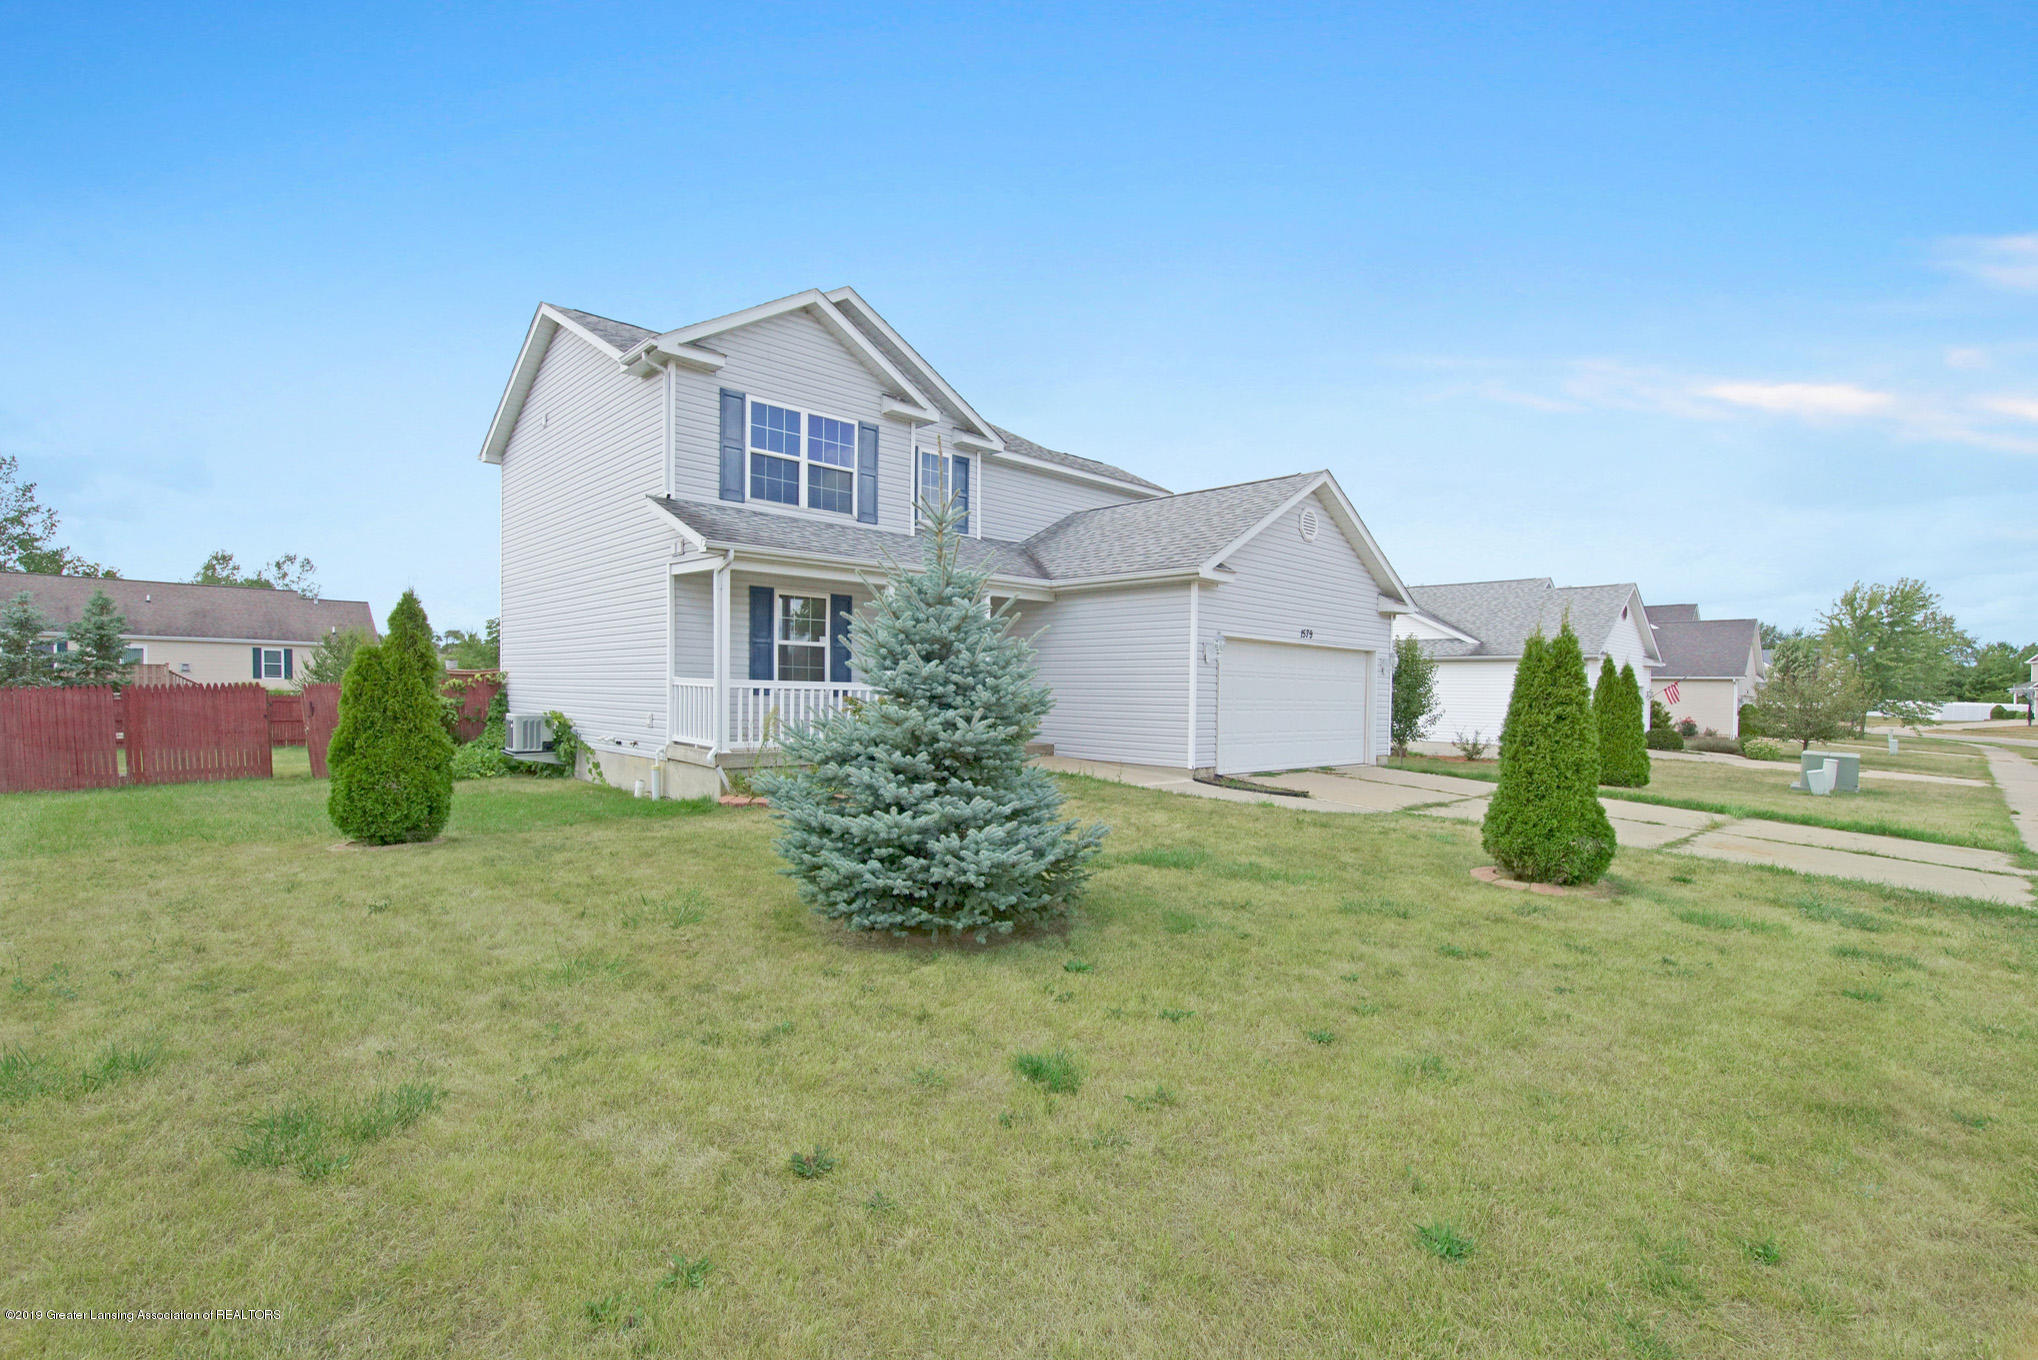 1579 Witherspoon Way - DSC02558 - 2